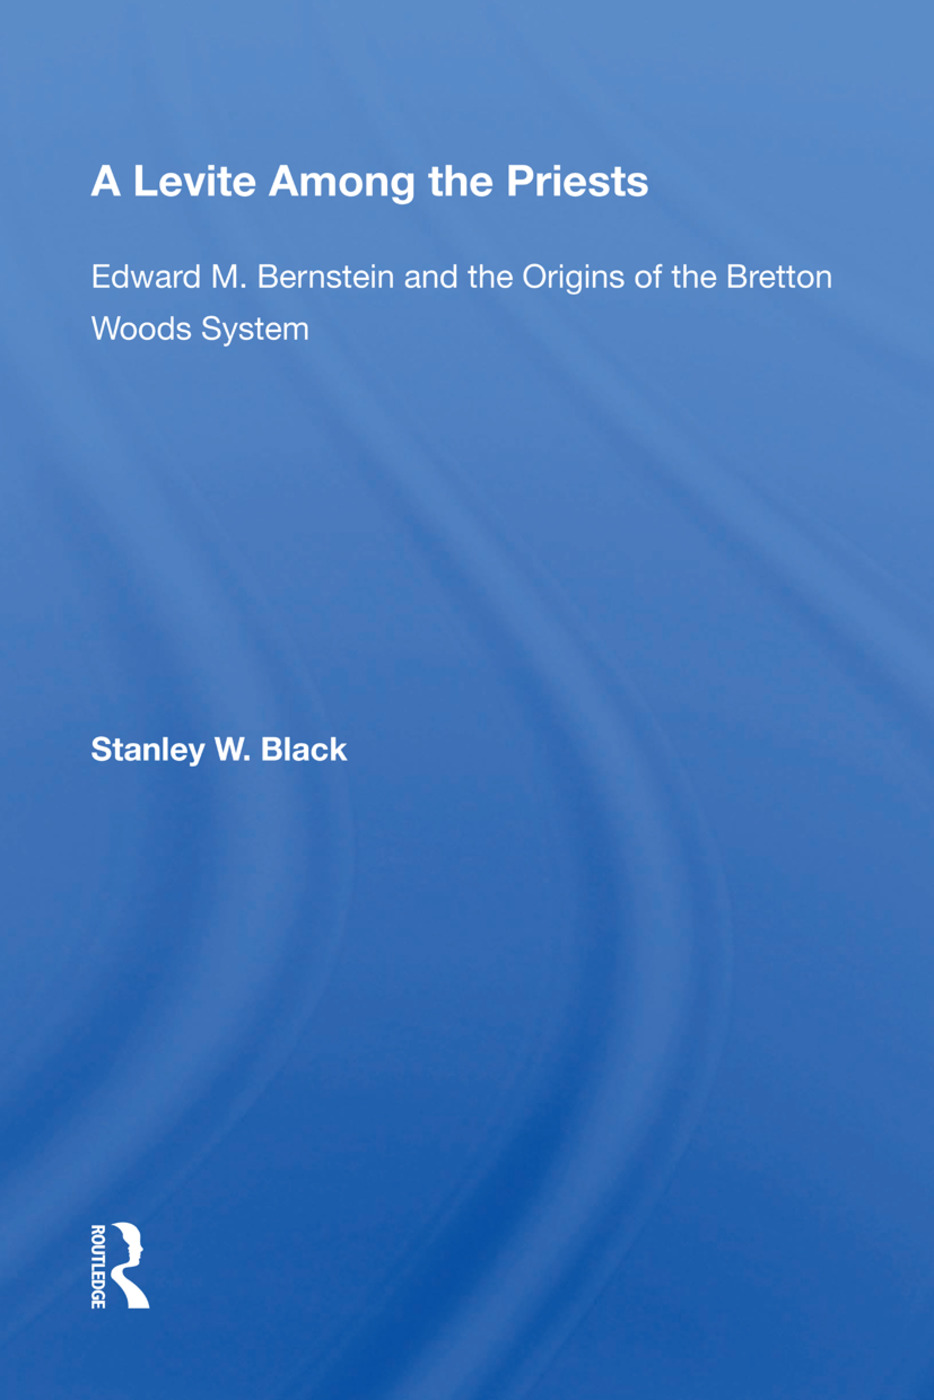 A Levite Among The Priests: Edward M. Bernstein And The Origins Of The Bretton Woods System, 1st Edition (Hardback) book cover